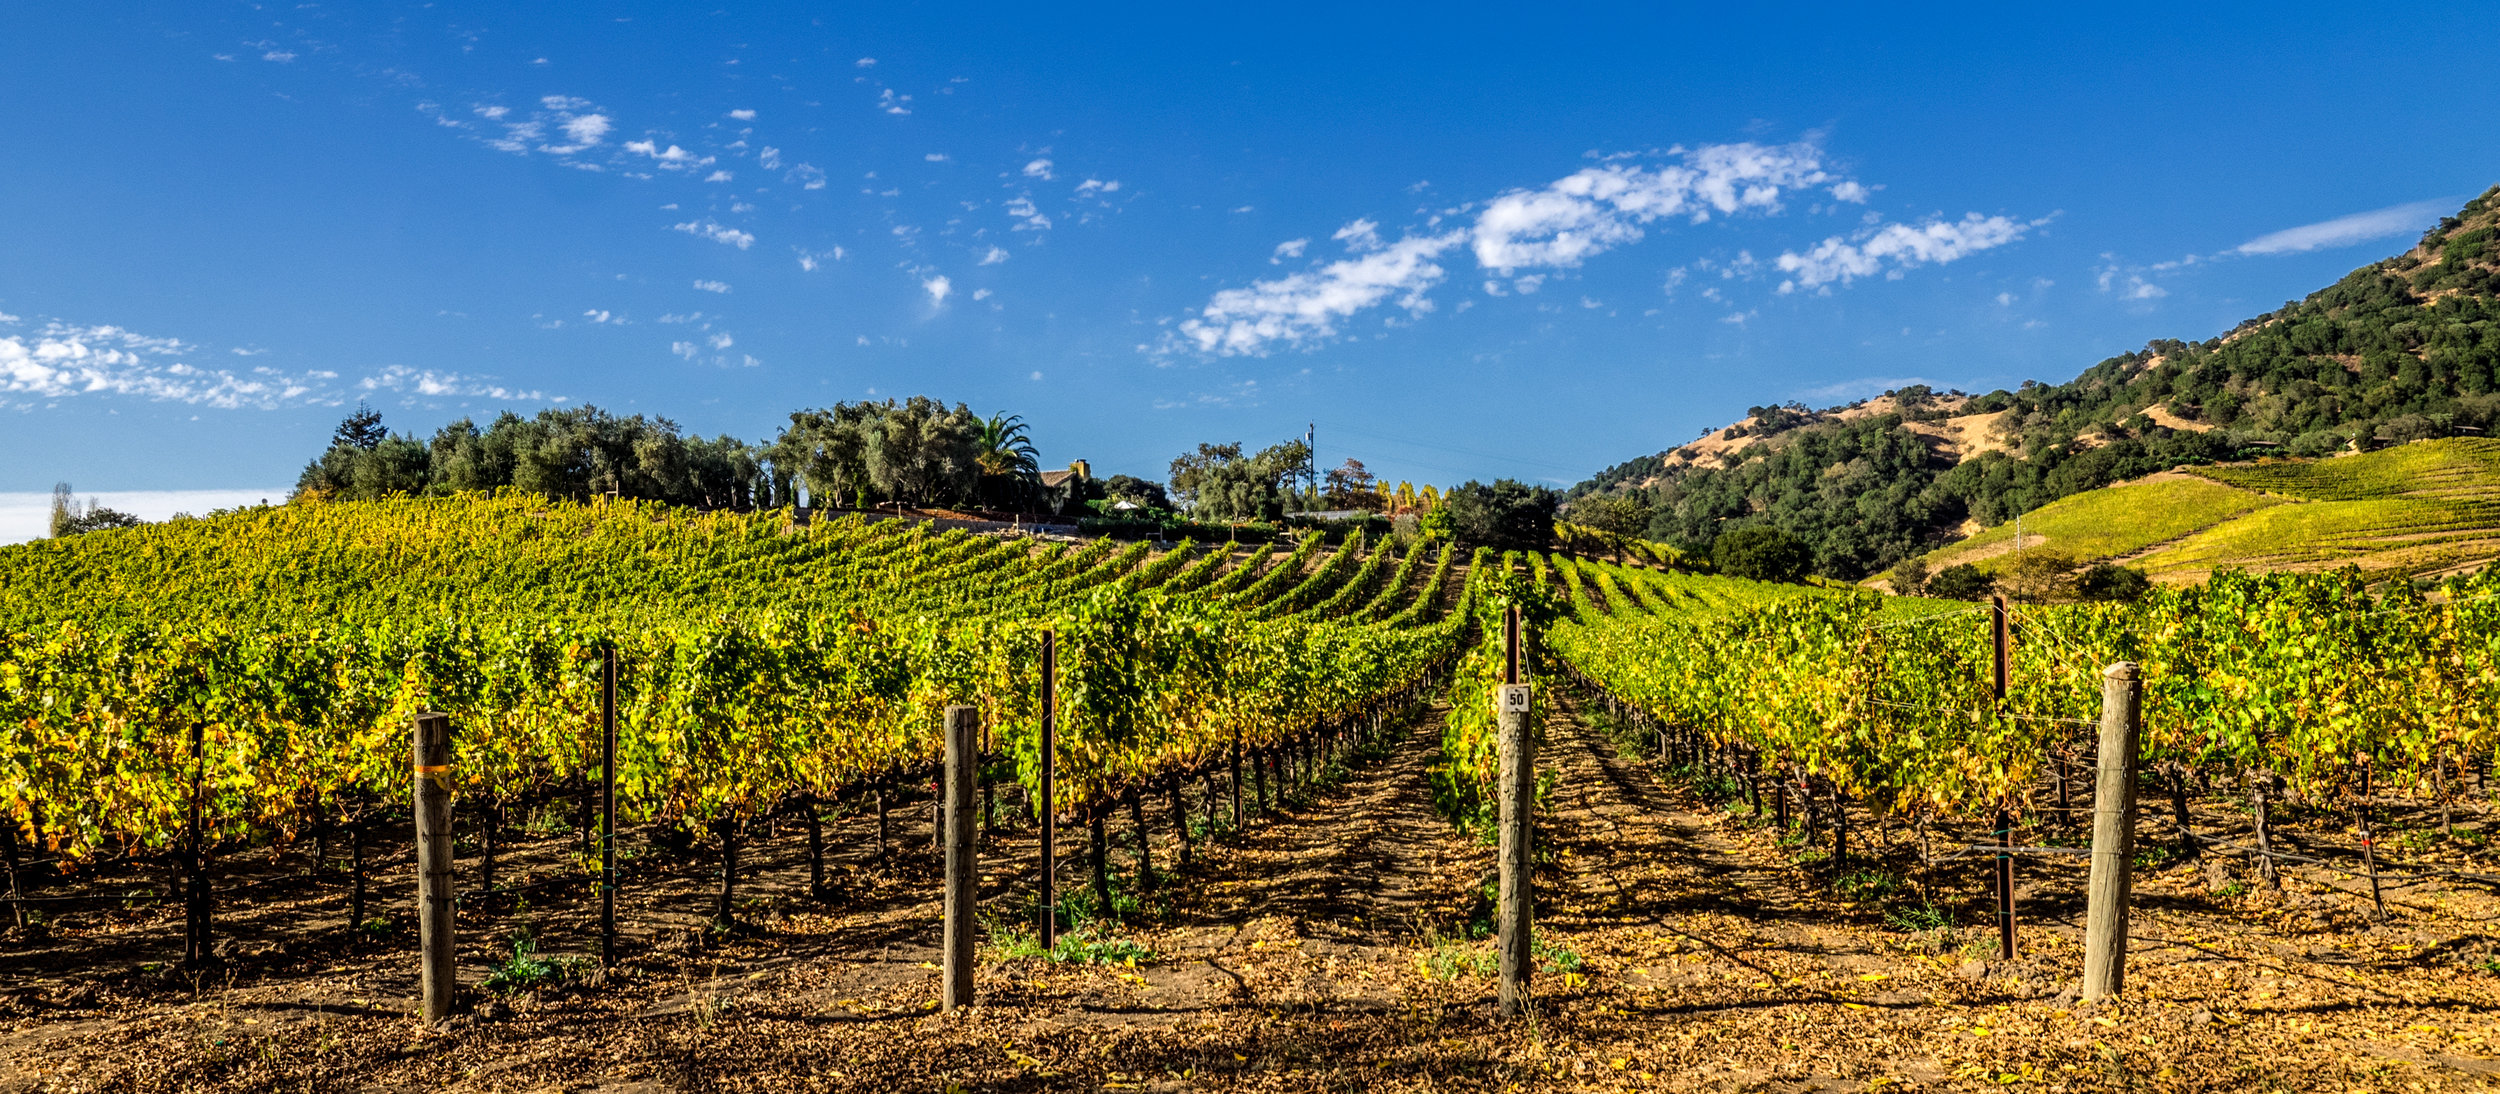 Jefferson would have been very fond of California's Napa Valley